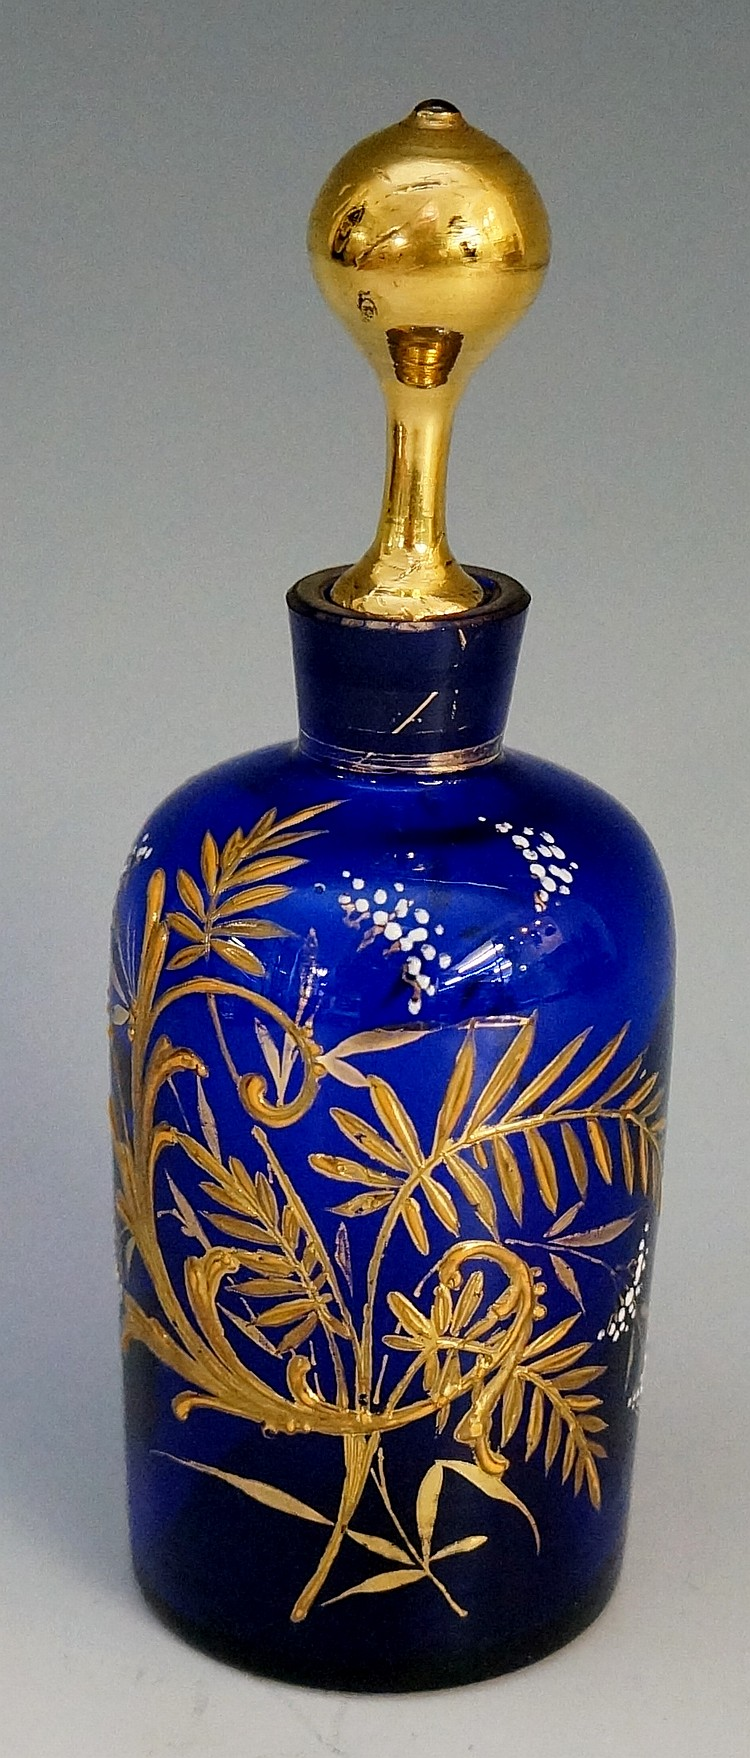 A Bristol blue glass scent bottle, the body with enamel and gilt foliage in